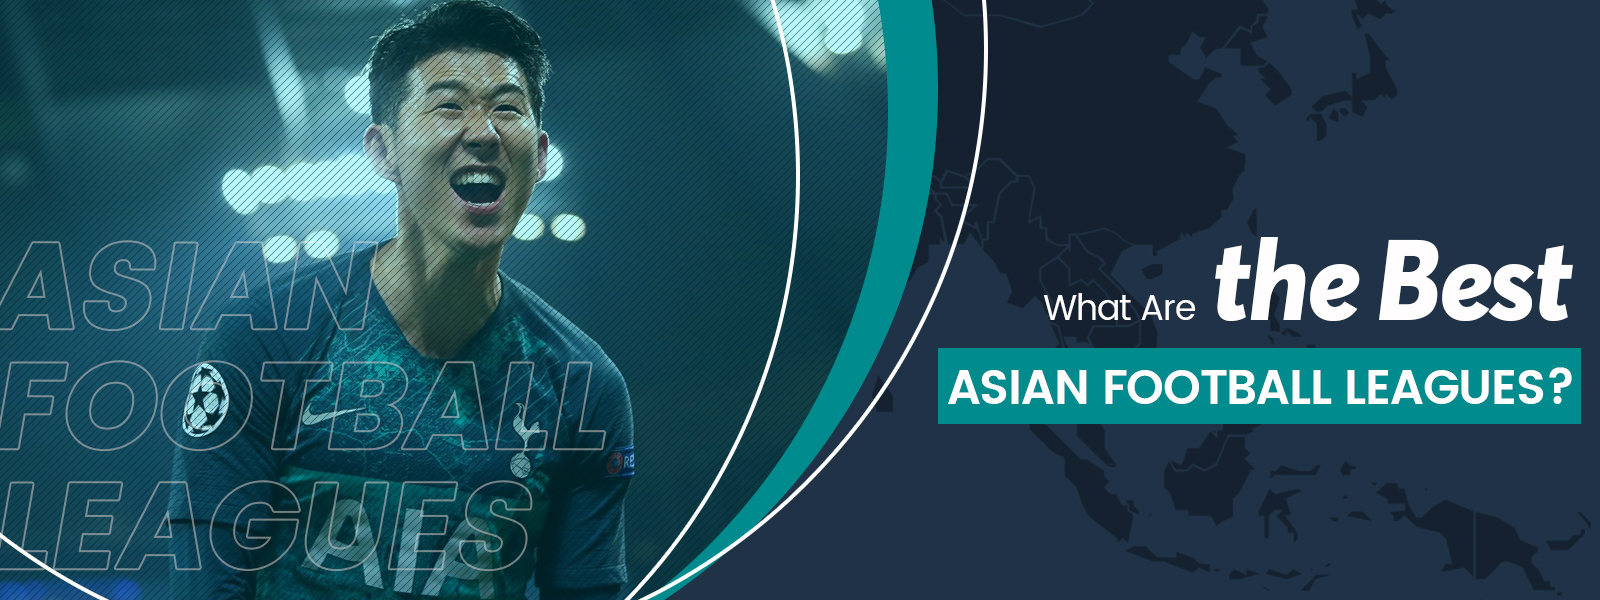 What Are The Best Asian Football Leagues?